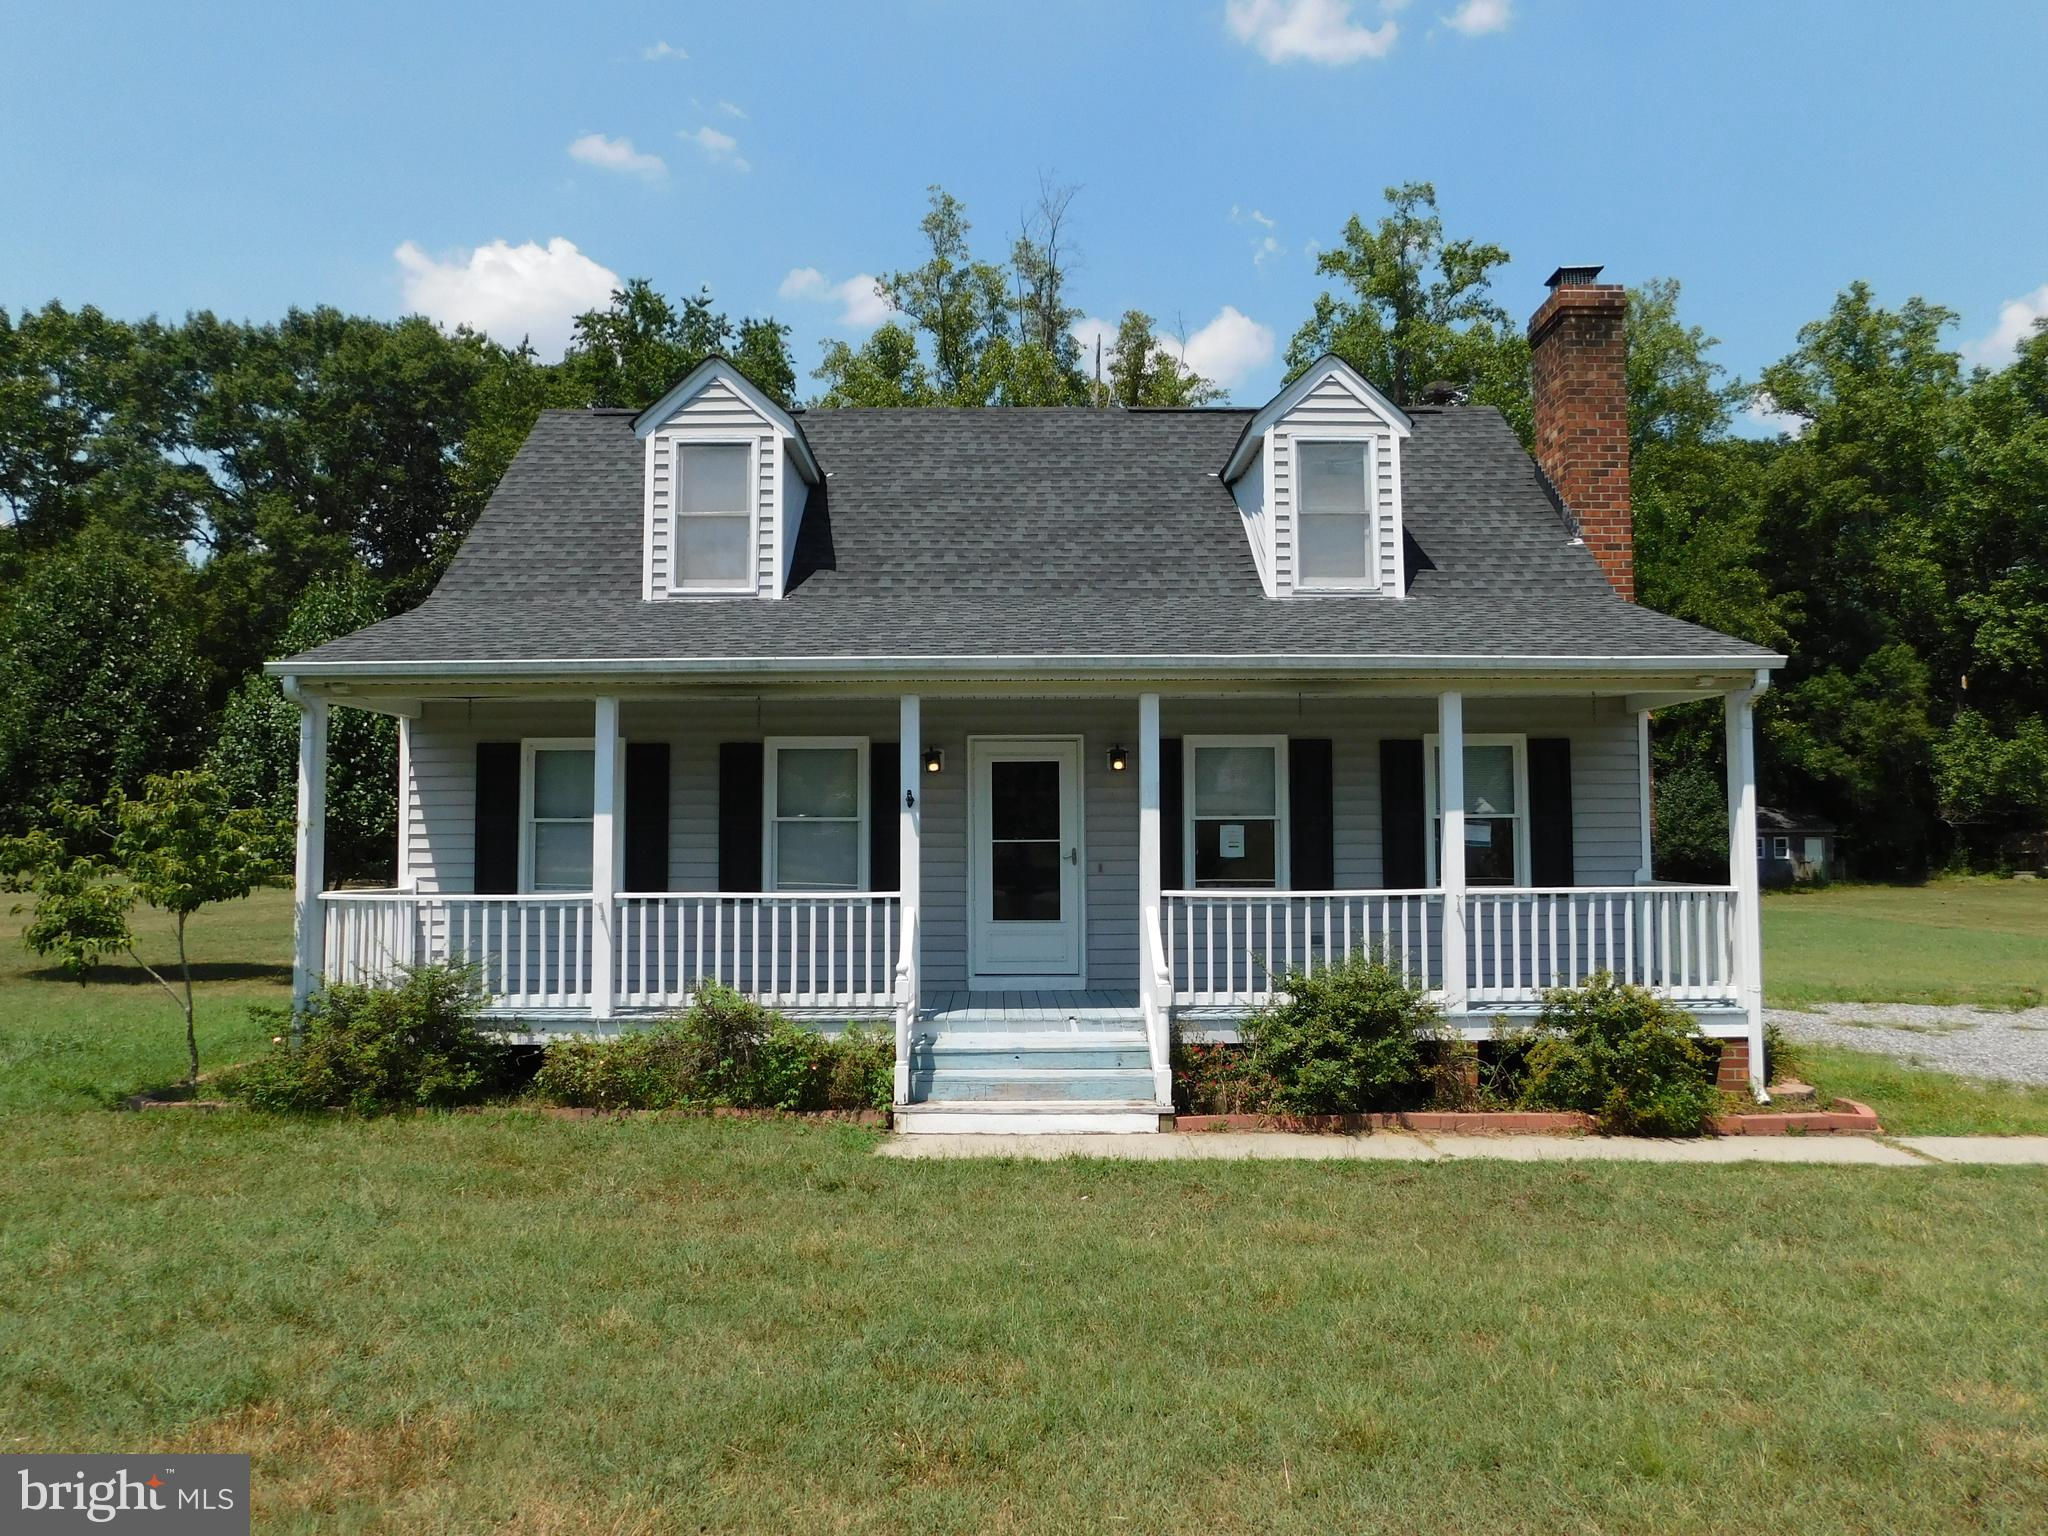 47 MITCHELLS MILL ROAD, AYLETT, VA 23009